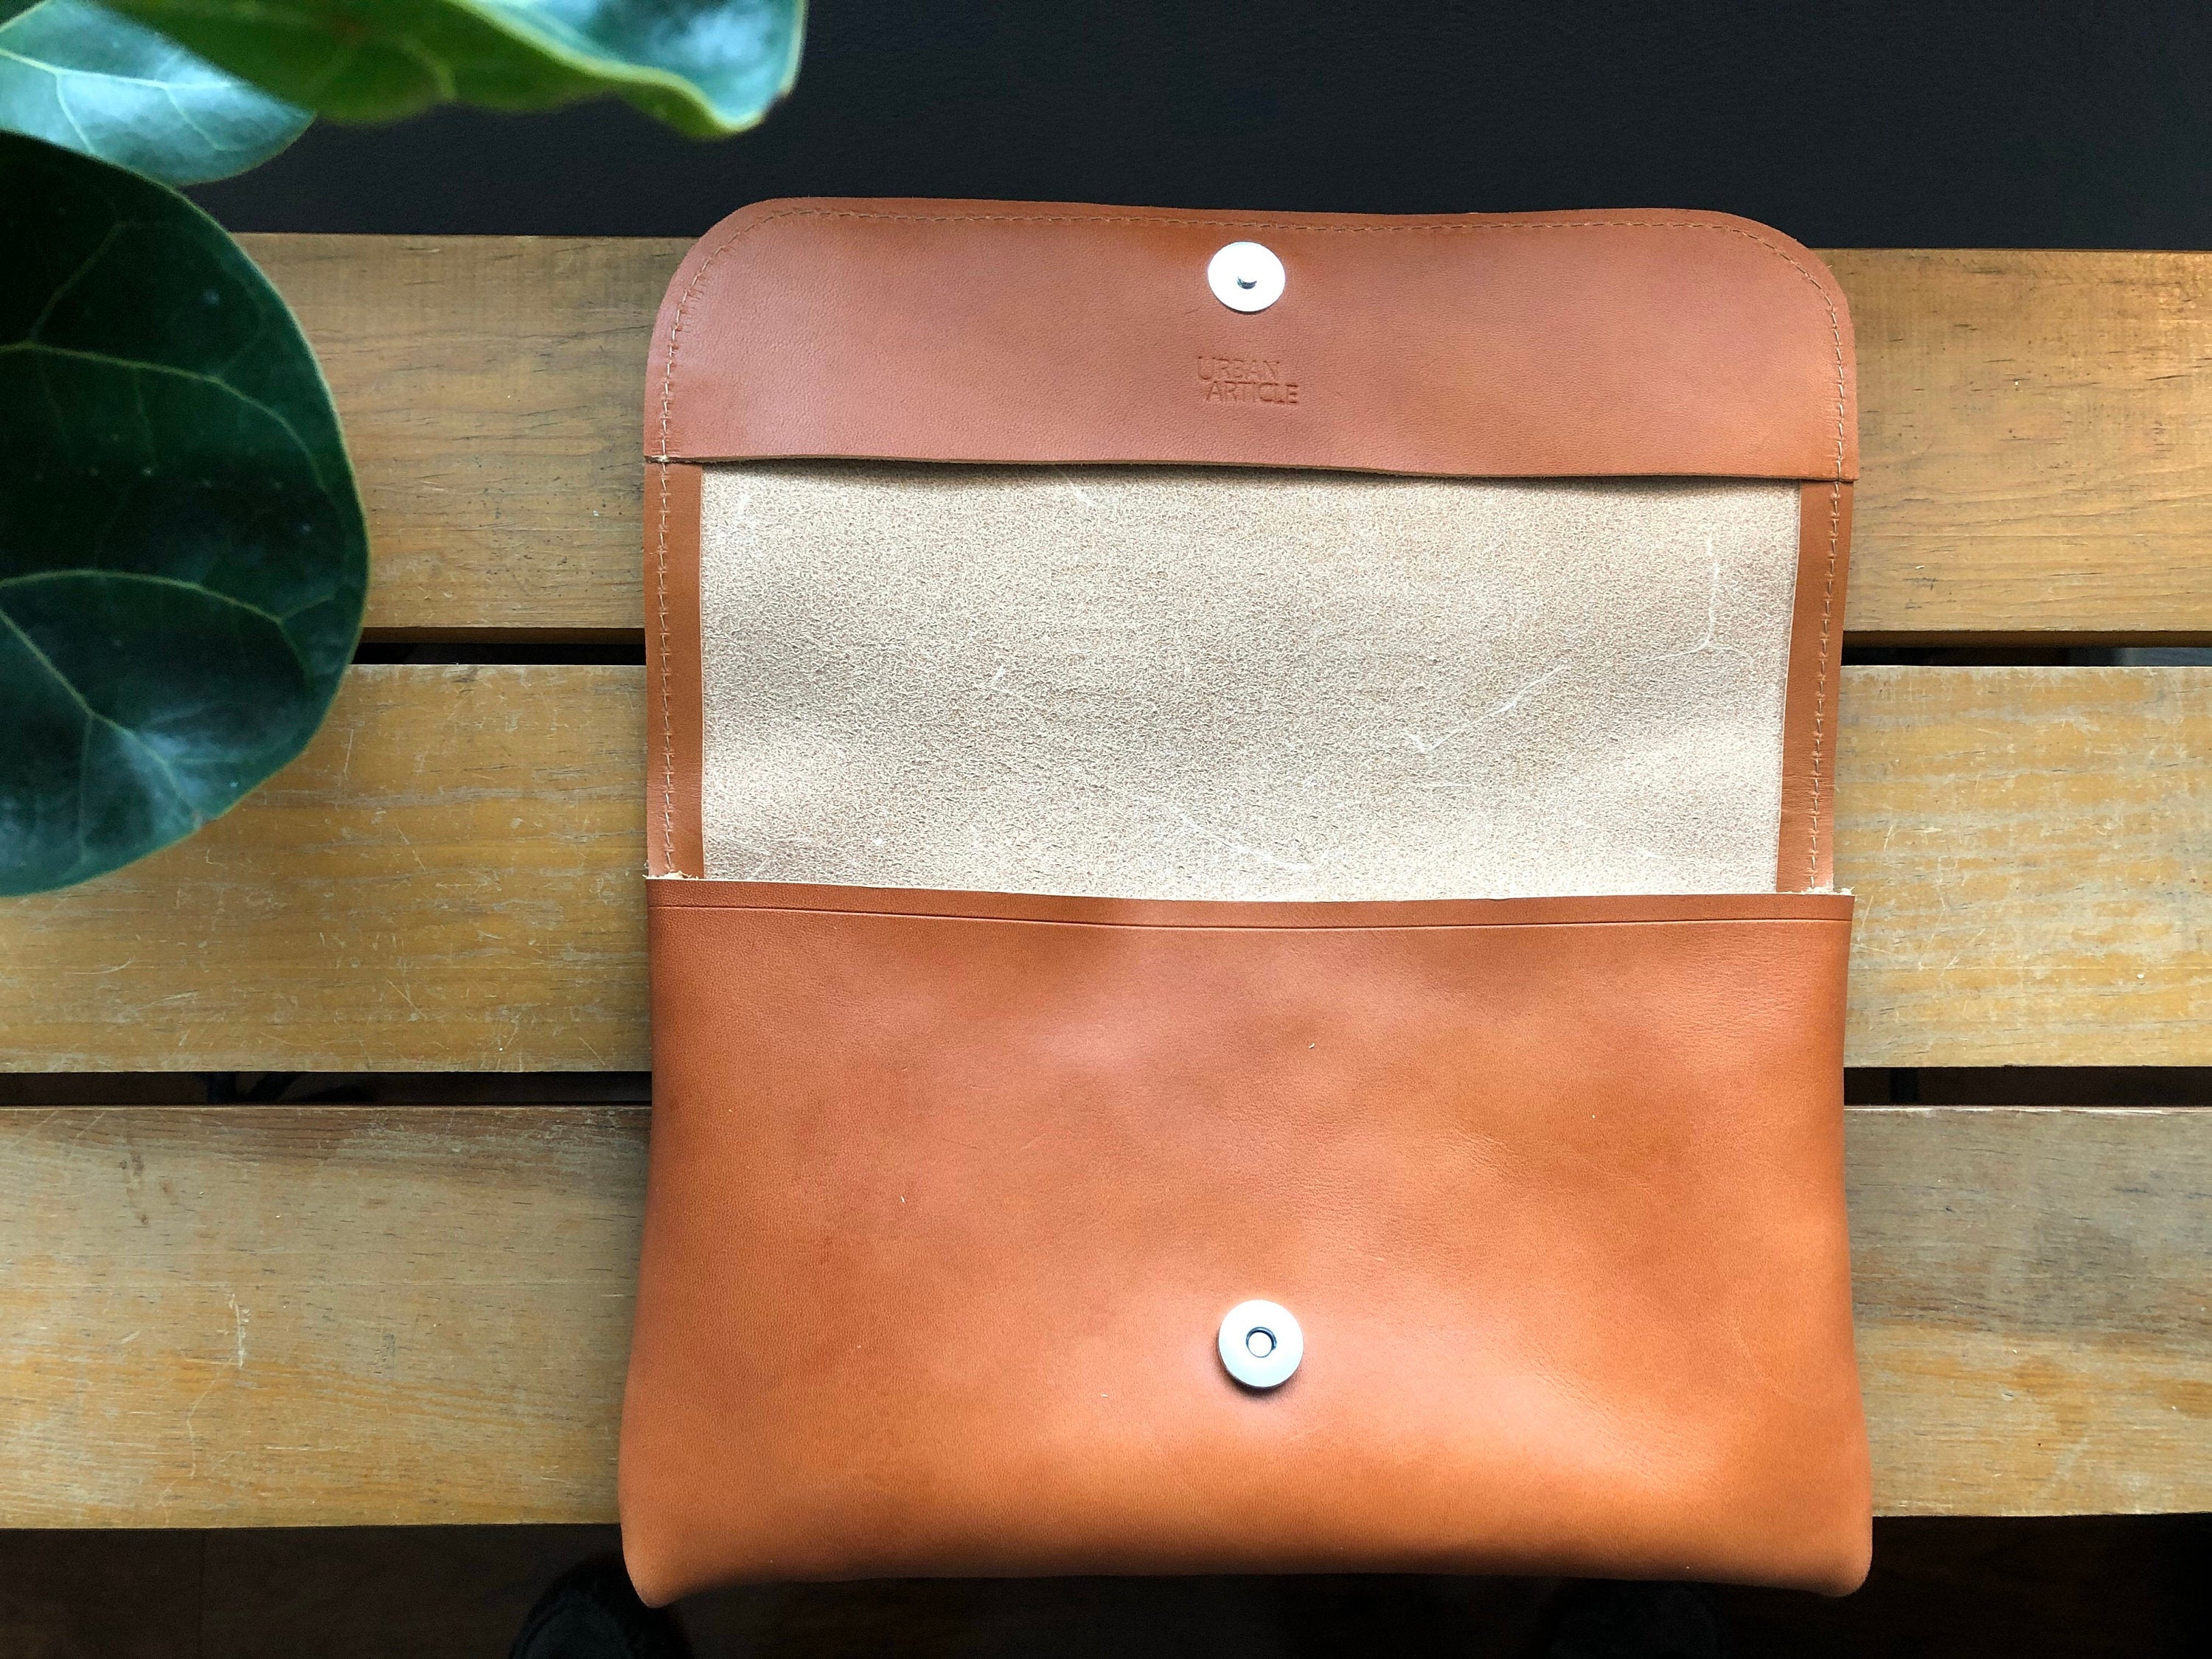 Tan leather clutch opened to see natural leather interior and magnetic clasp